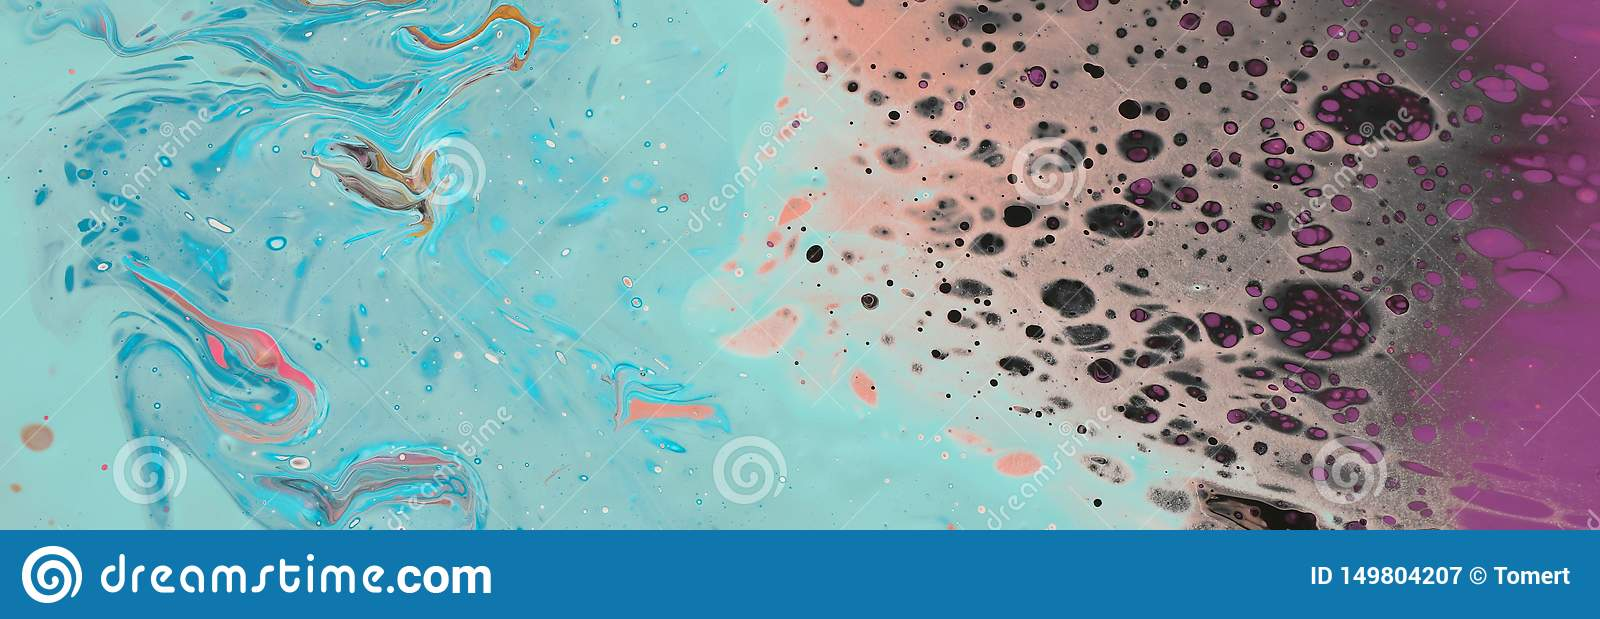 Photography Of Abstract Marbleized Effect Background Mint